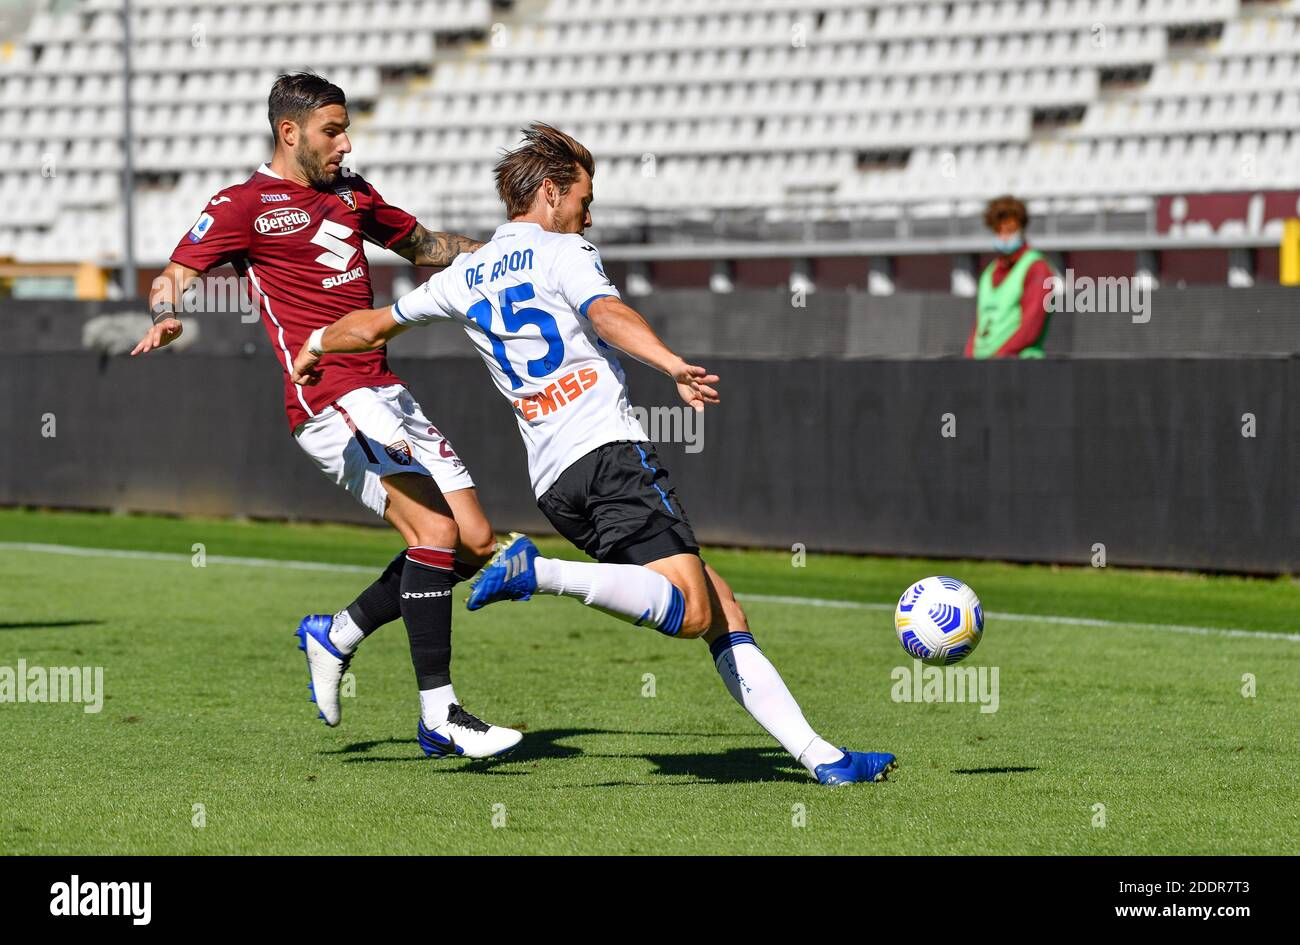 Torino, Italy. 26th, September 2020. Marten de Roon (15) of Atalanta and Nicola Murru (29) of Torino seen in the Serie A match between Torino and Atalanta at Stadio Olimpico in Torino. (Photo credit: Gonzales Photo - Tommaso Fimiano). Stock Photo